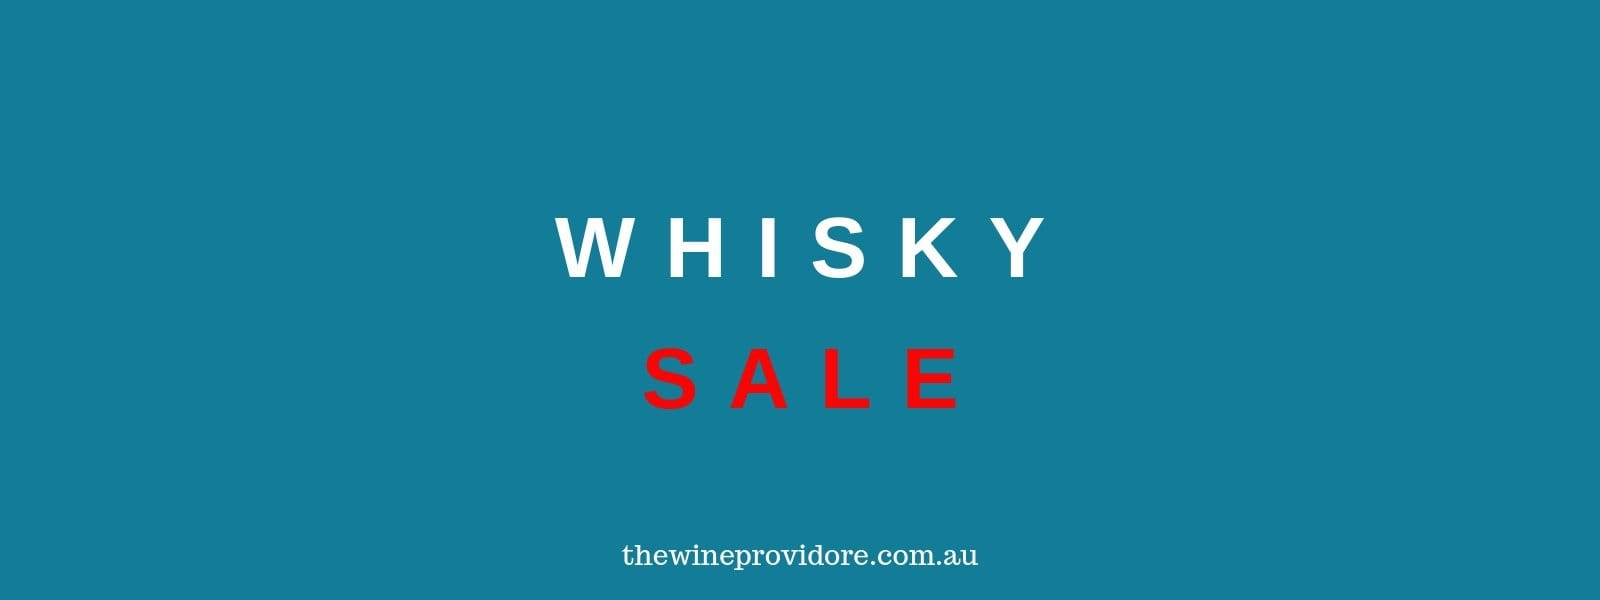 Enter the Whisky Sale